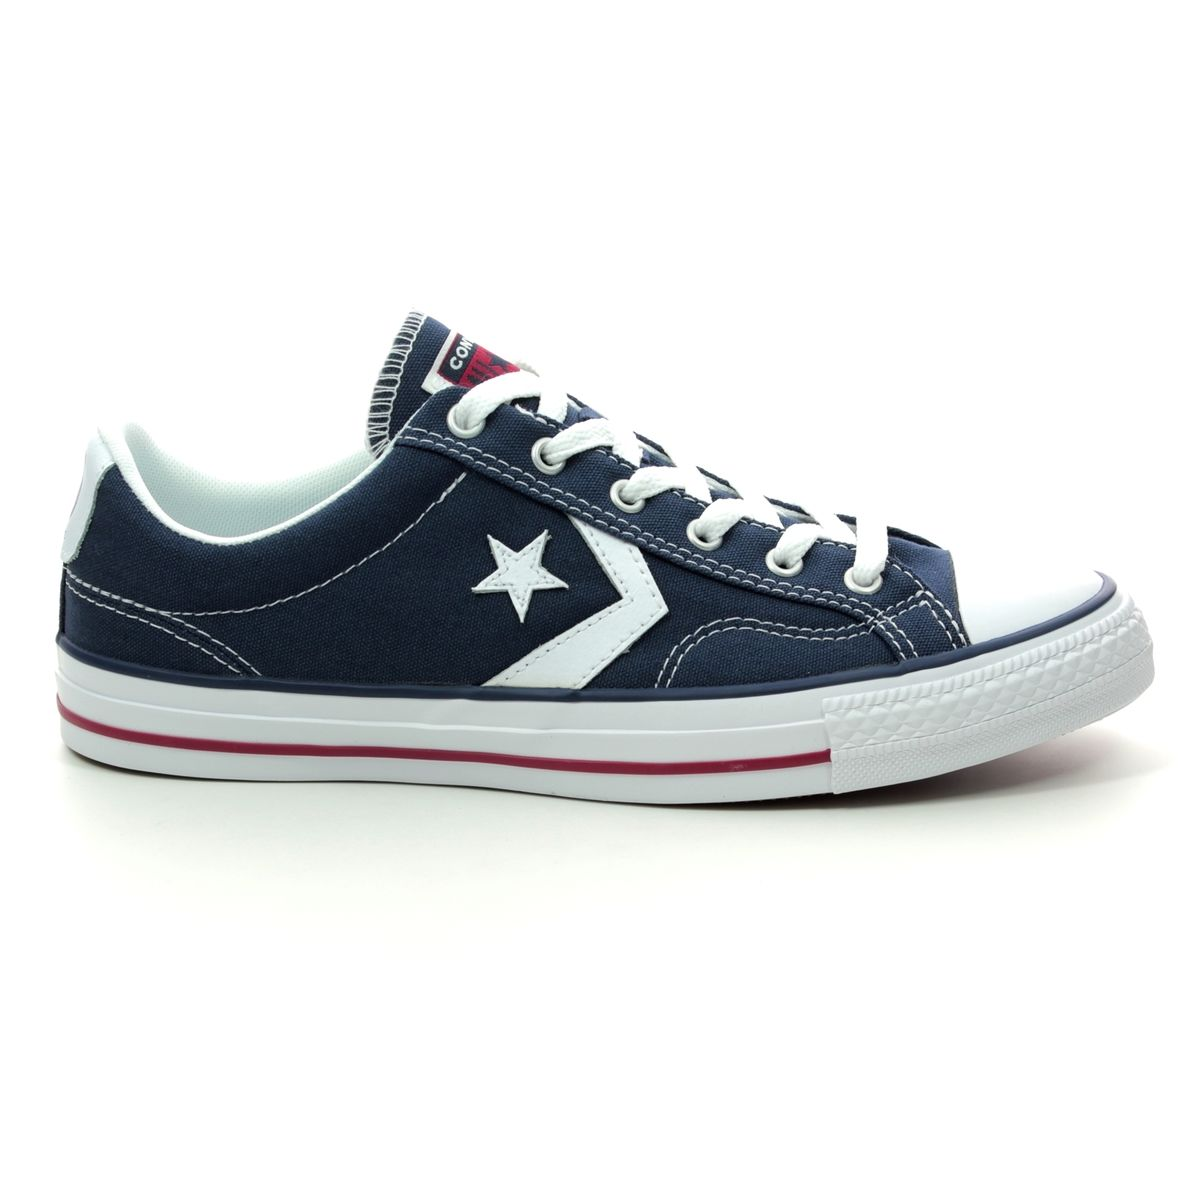 c9c541e37706 Converse Trainers - Navy - 144150C STAR PLAYER OX